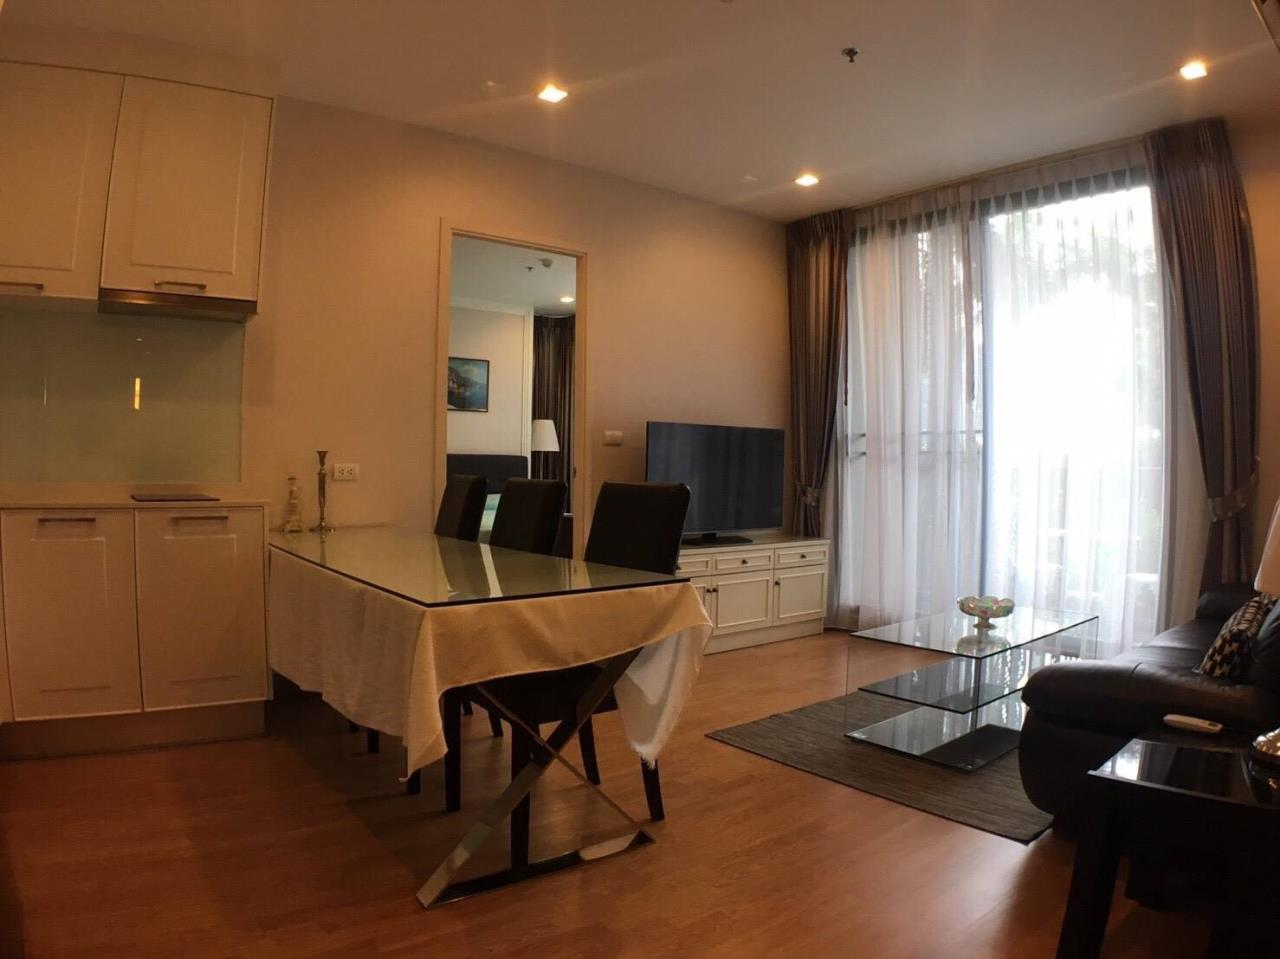 SALA ESTATE Agency's Q HOUSE SUKHUMVIT 79 – BTS ON NUT, 2 Bedrooms 2 Bathrooms, Fully Furnished, City View 7